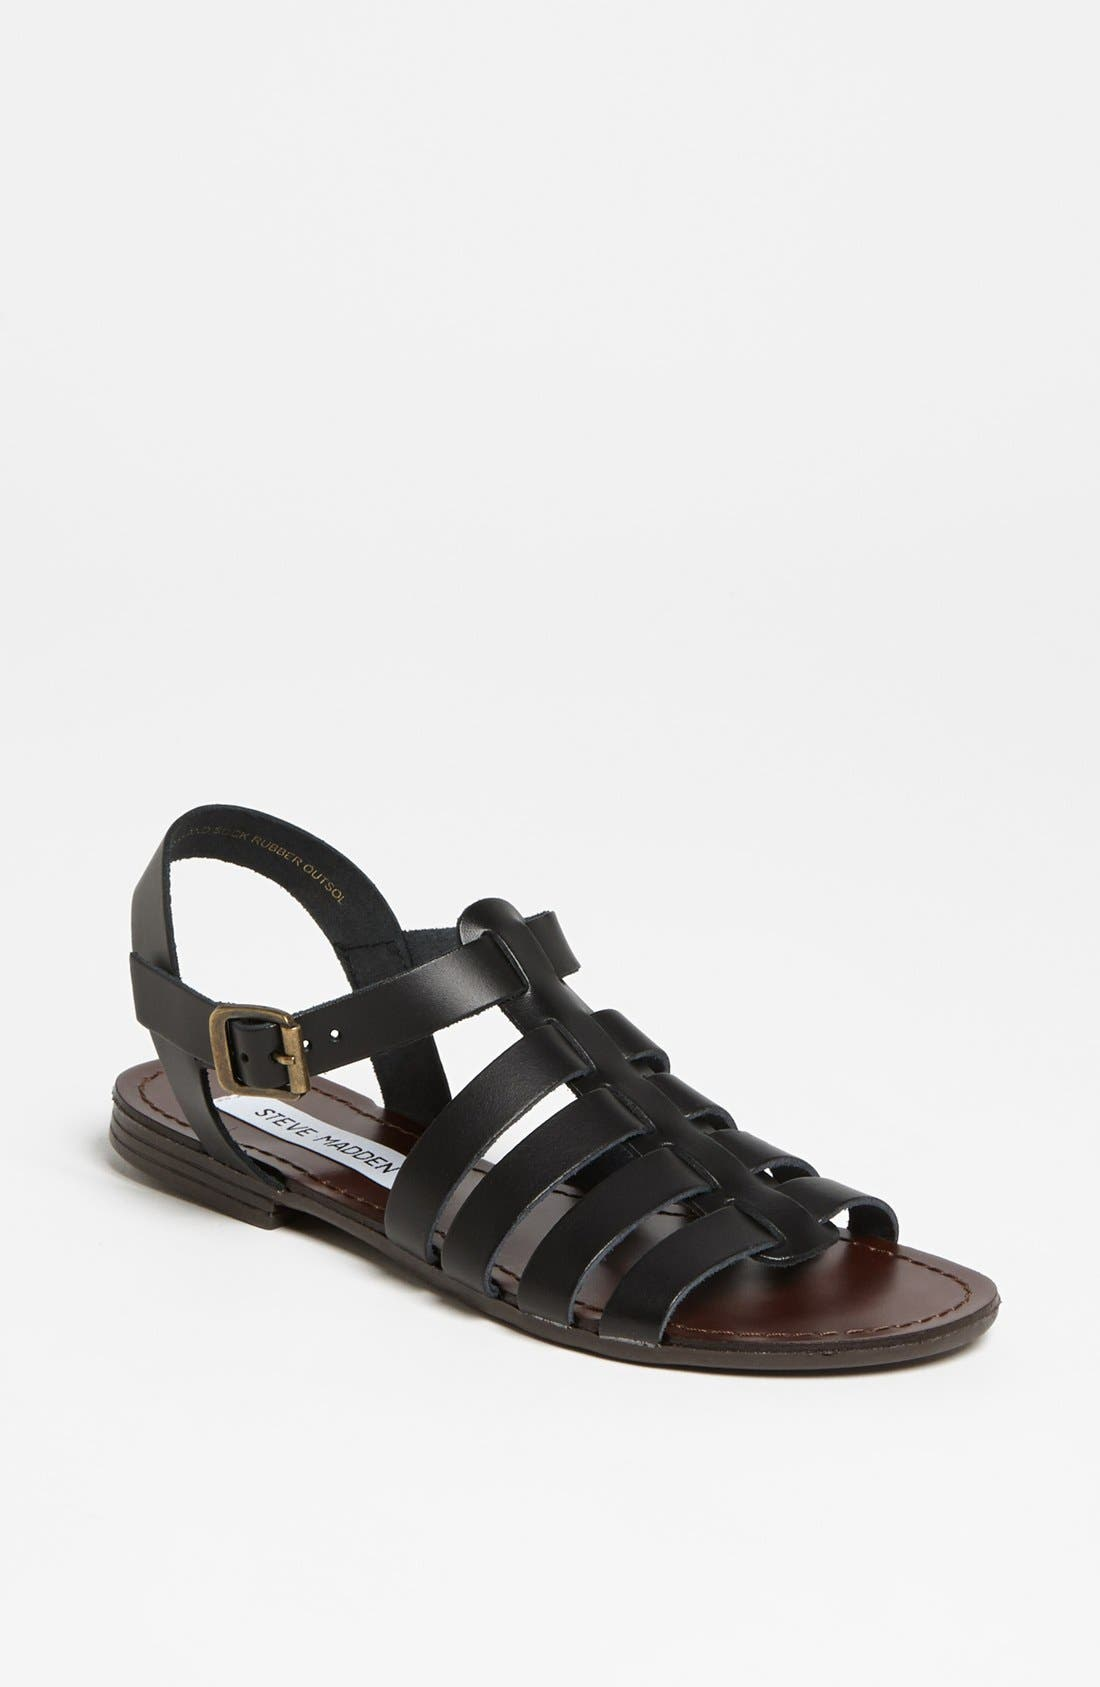 Alternate Image 1 Selected - Steve Madden 'Alter' Sandal